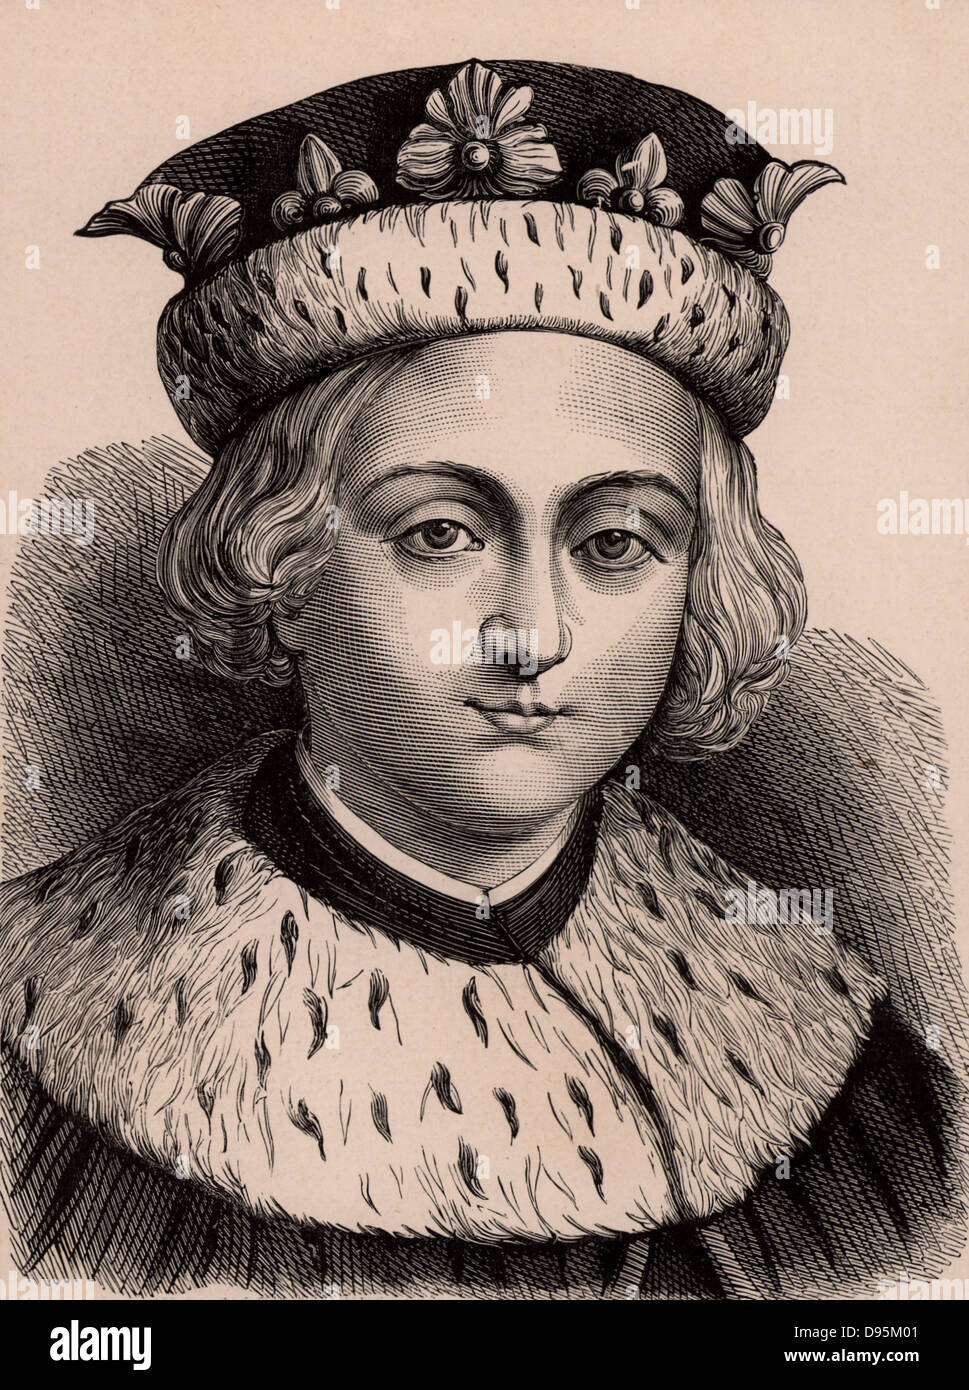 Edward V (1470-1483), king of England 1483. Son of Edward V and one of the  Princes in the Tower. With his younger brother he